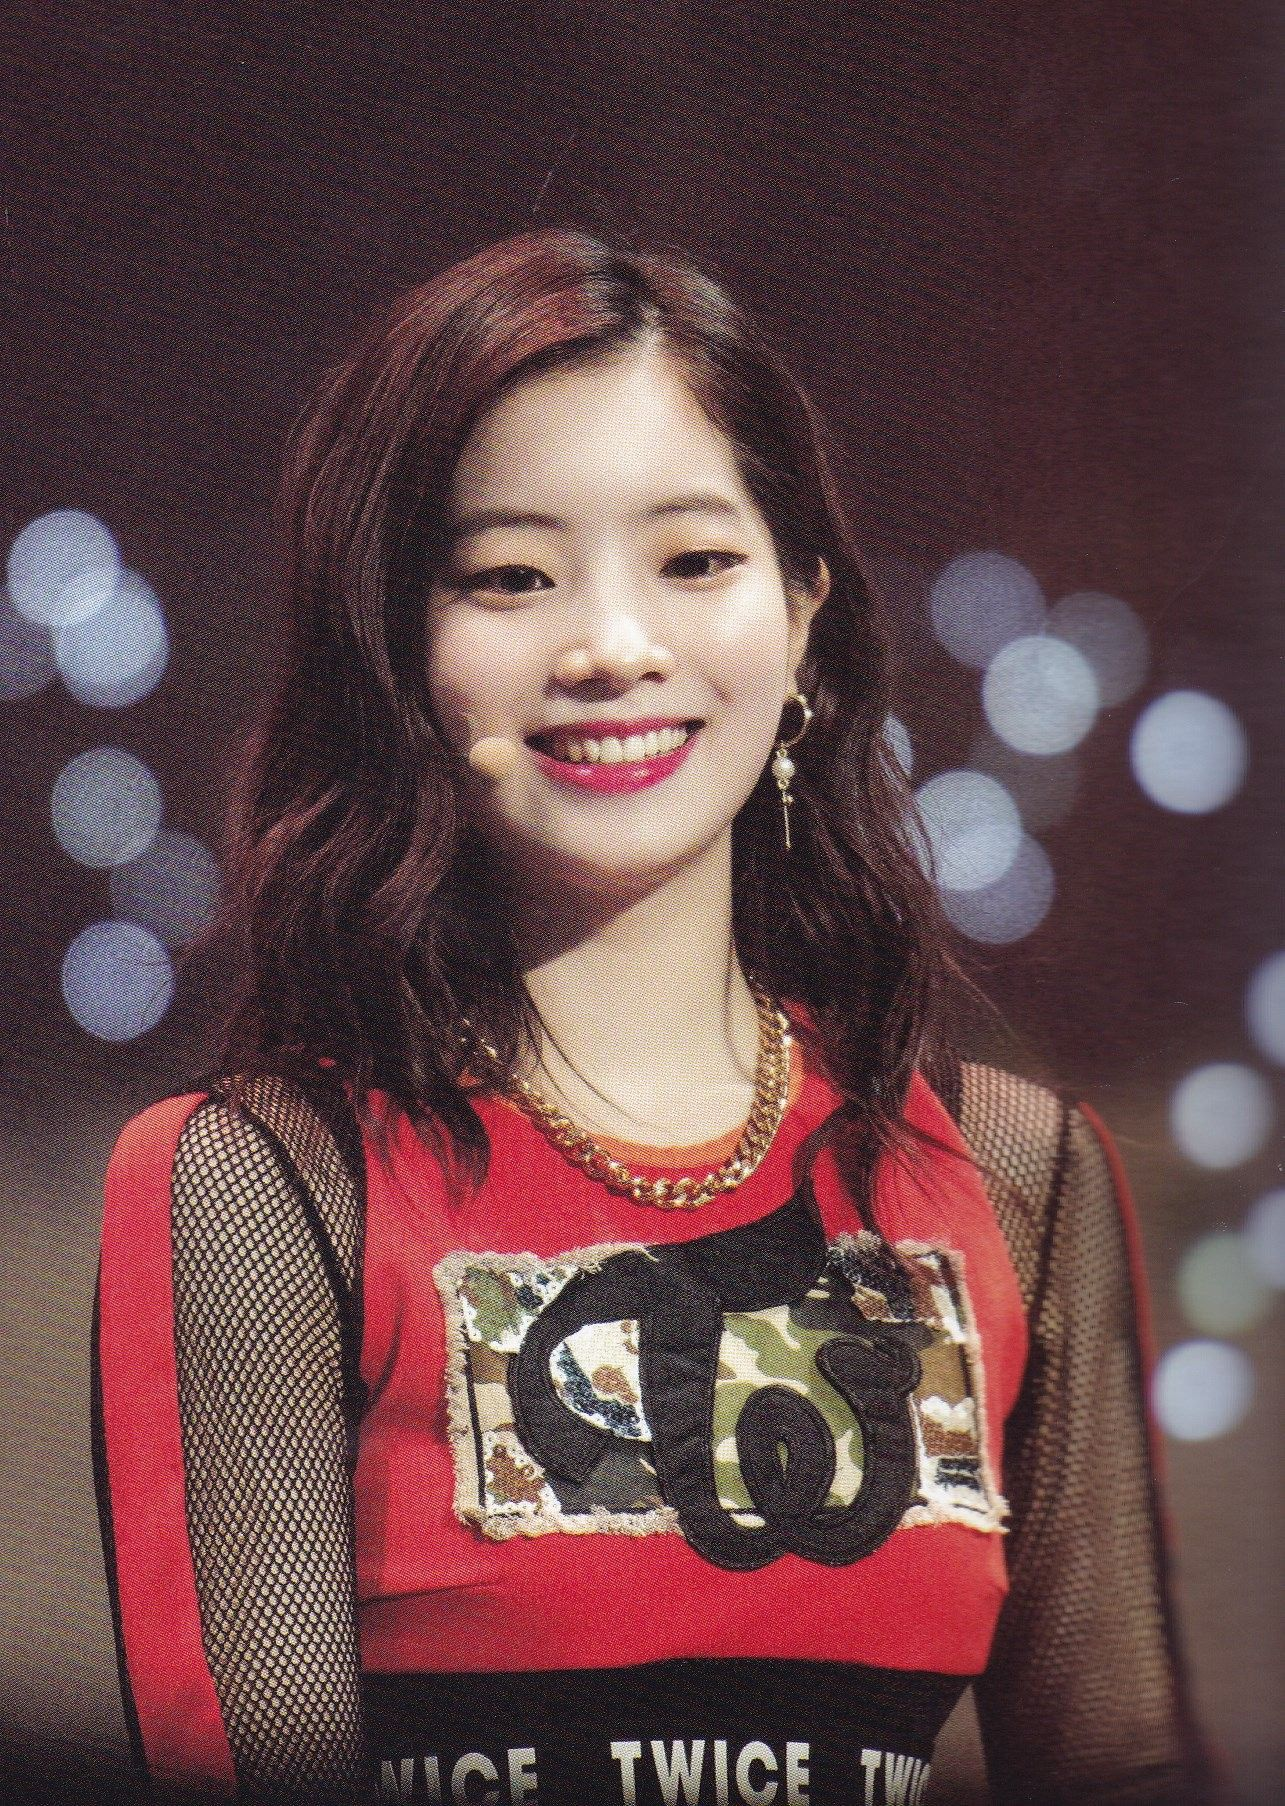 [SCAN] Once Begins DVD Photobook - Dahyun (1) @ztothek #다현 #DAHYUN #TWICE  #트와이스 | TWICE (트와이스) | MY CRUSH